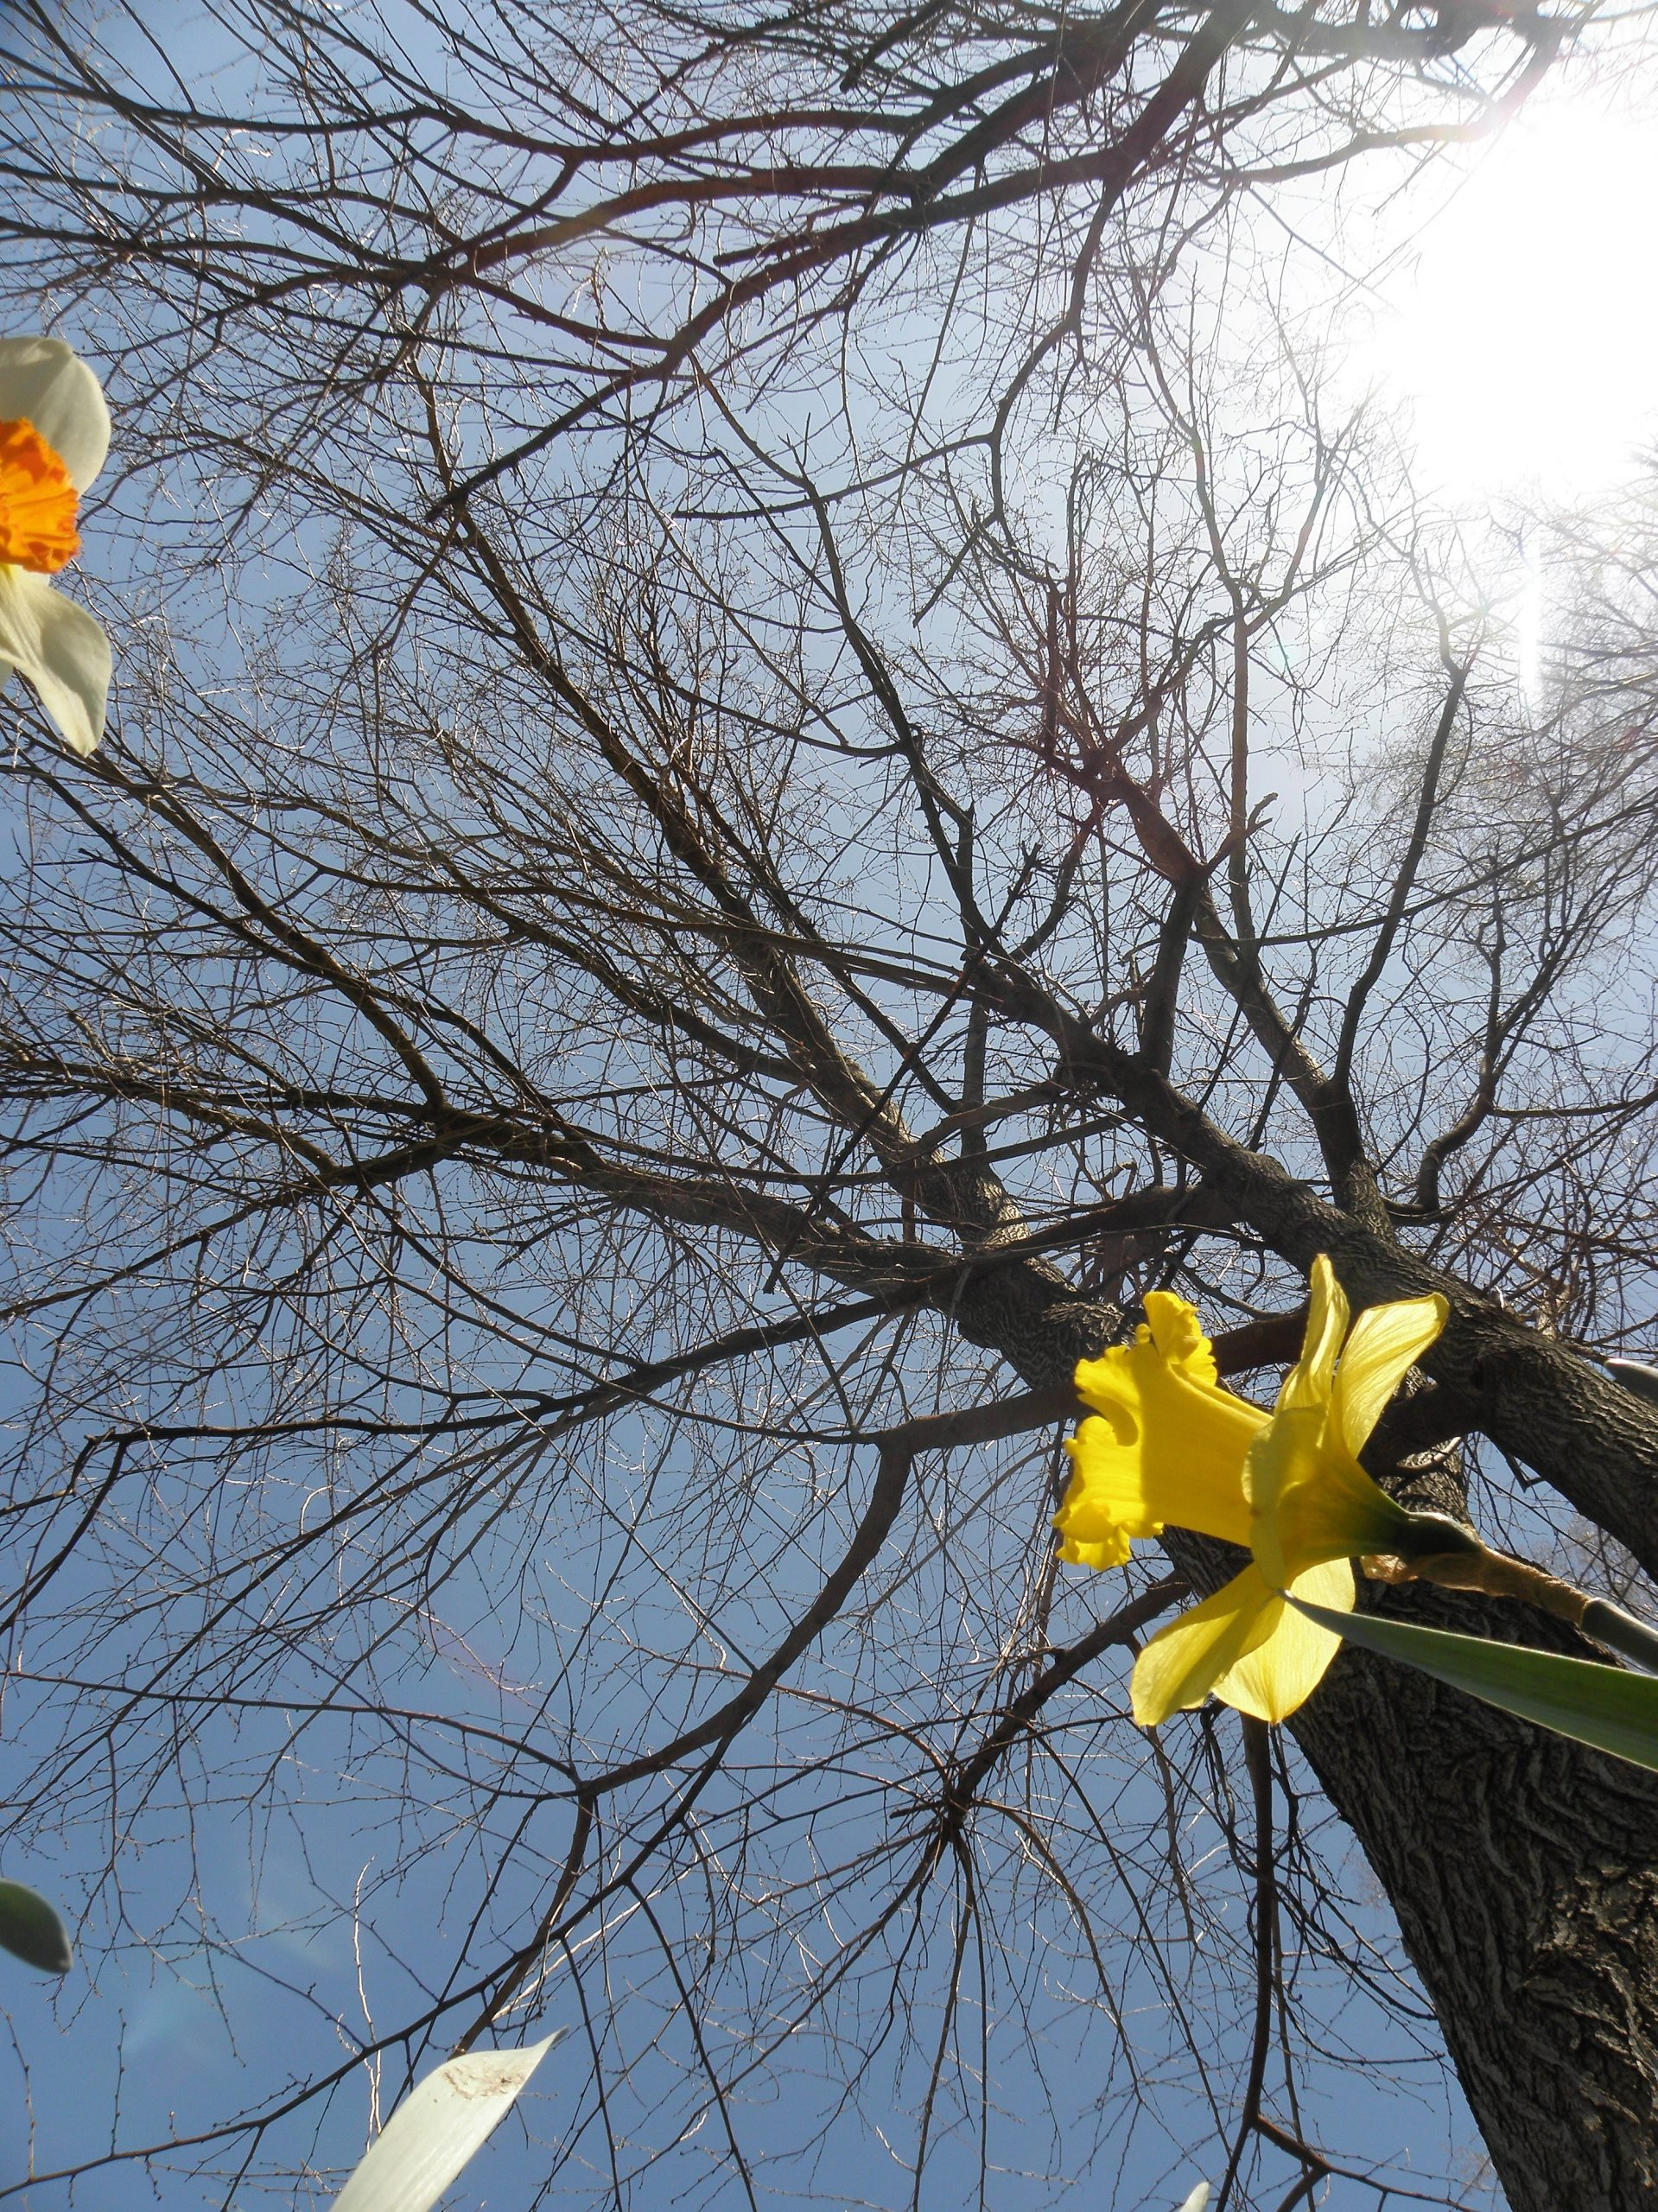 Daffodils and trees, Cleveland, 4/20/20